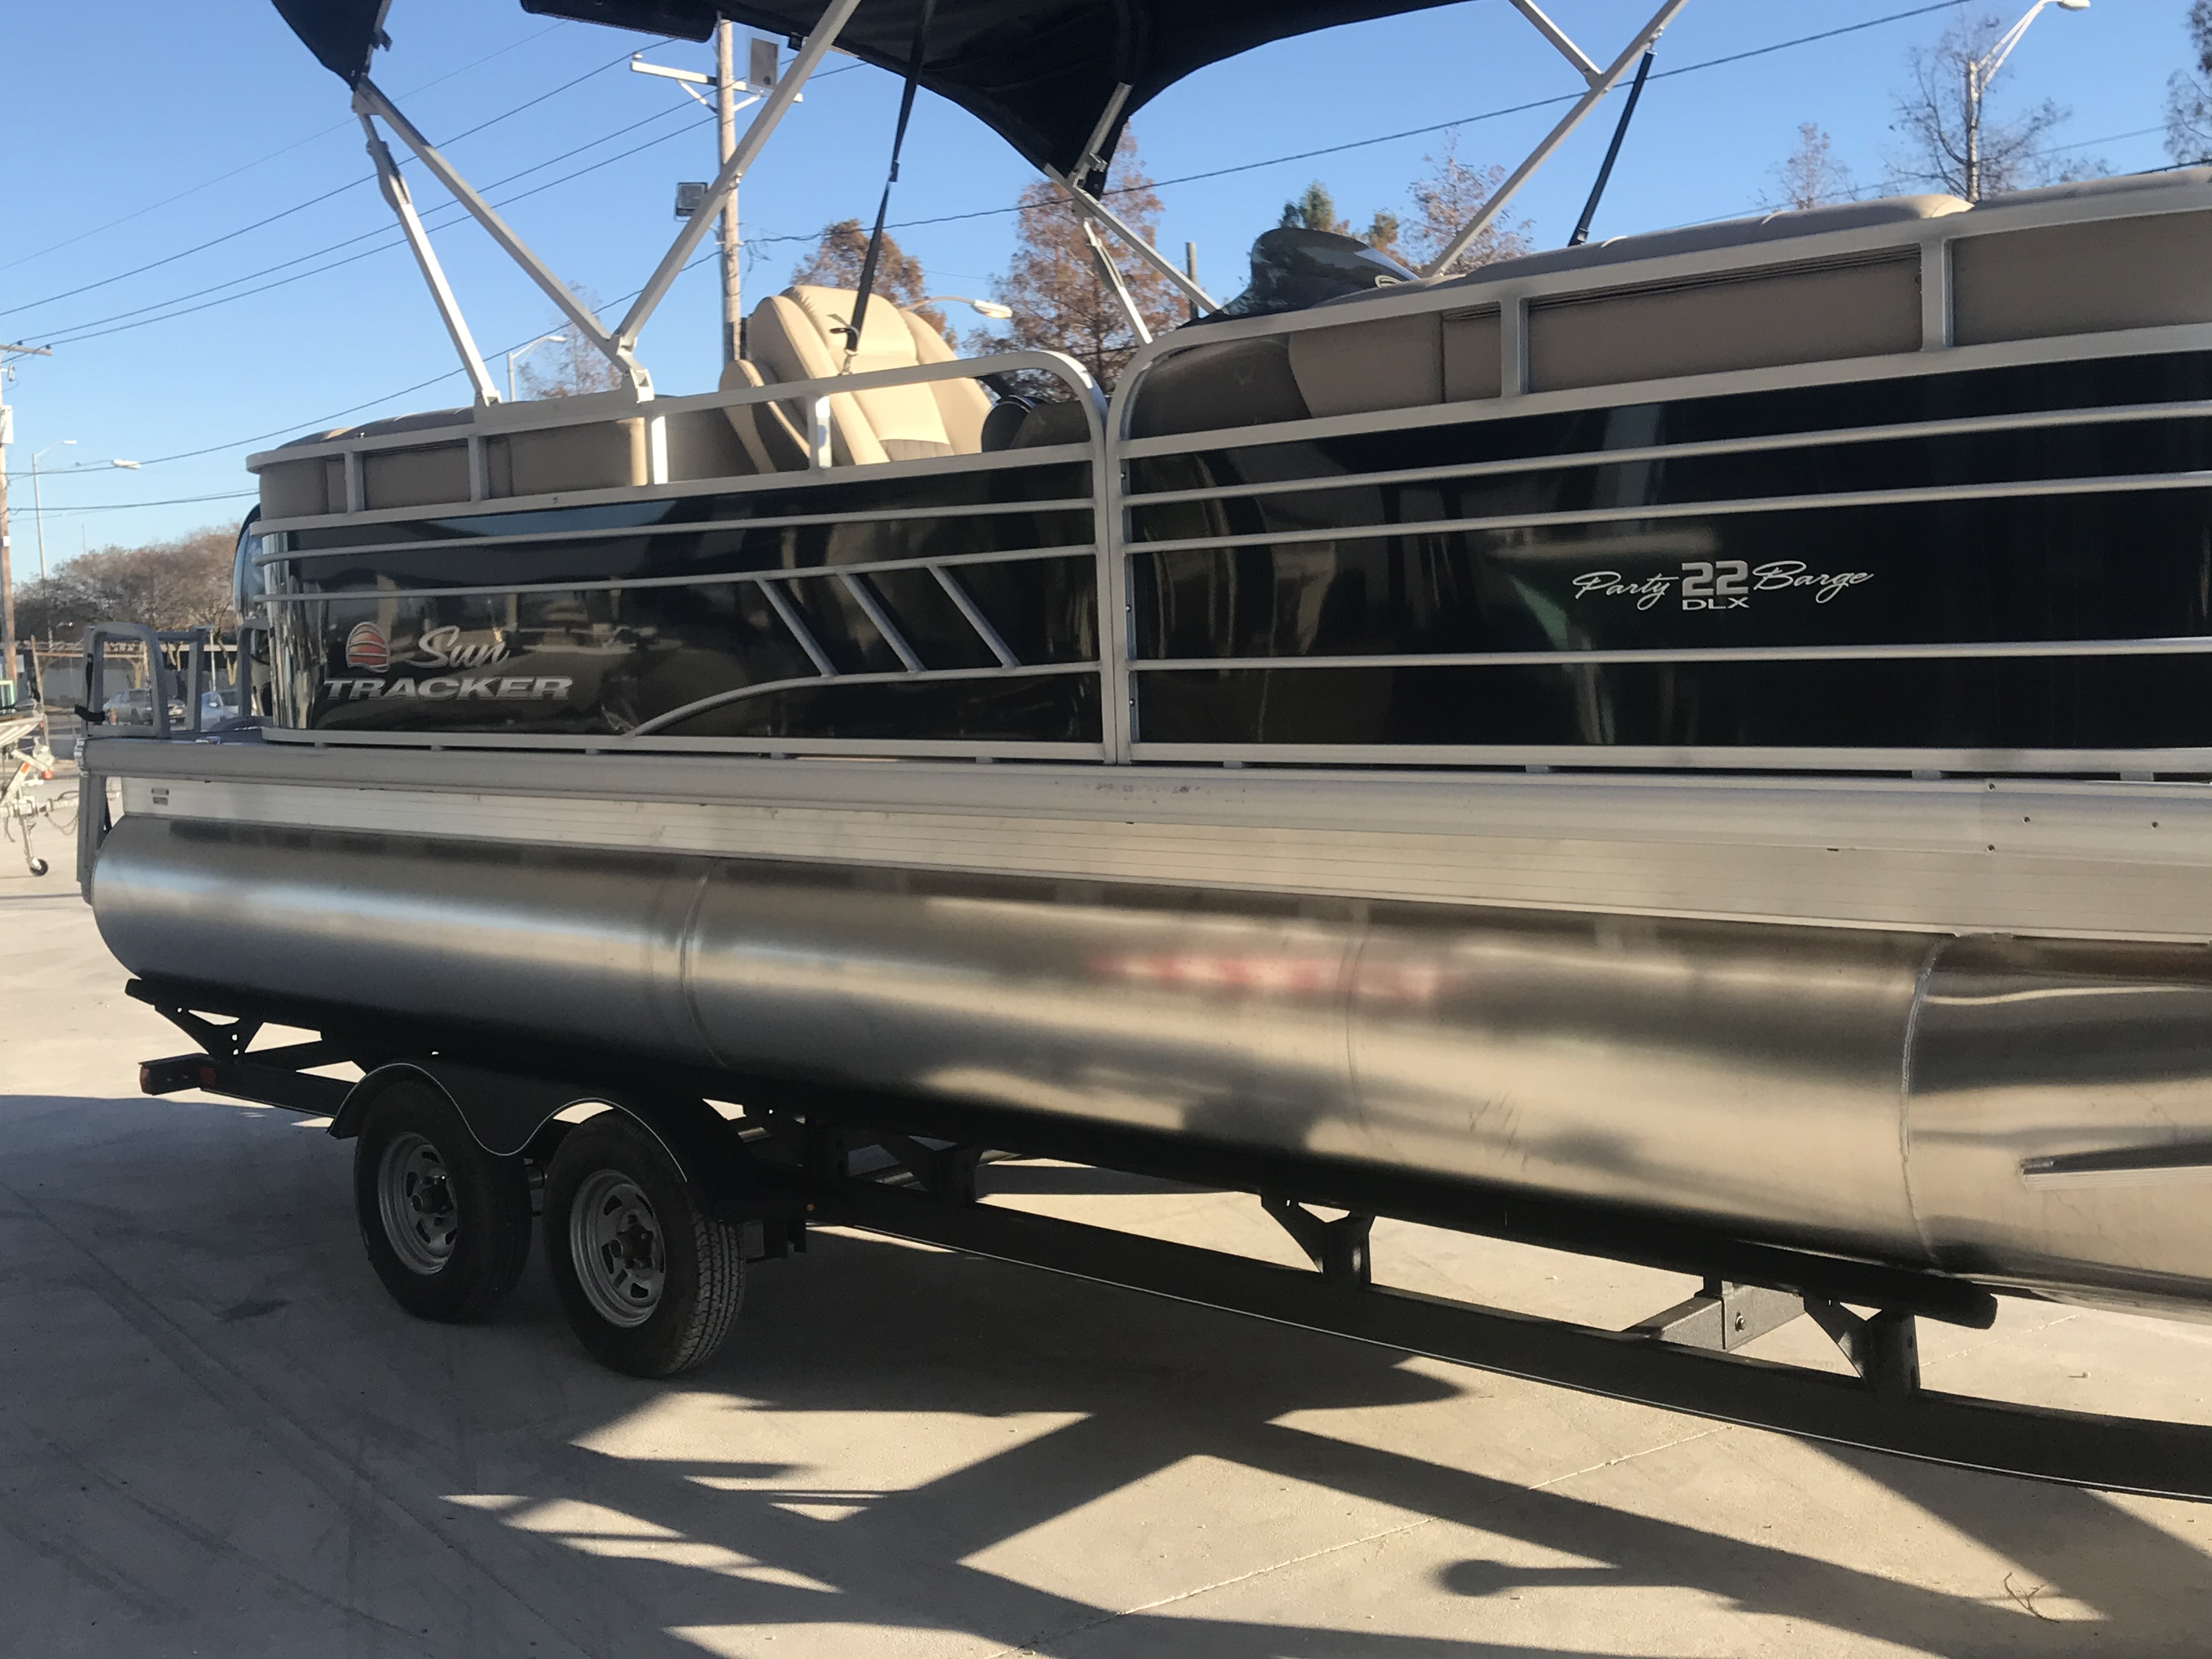 2022 Sun Tracker boat for sale, model of the boat is 22 Party Barge DLX & Image # 9 of 15